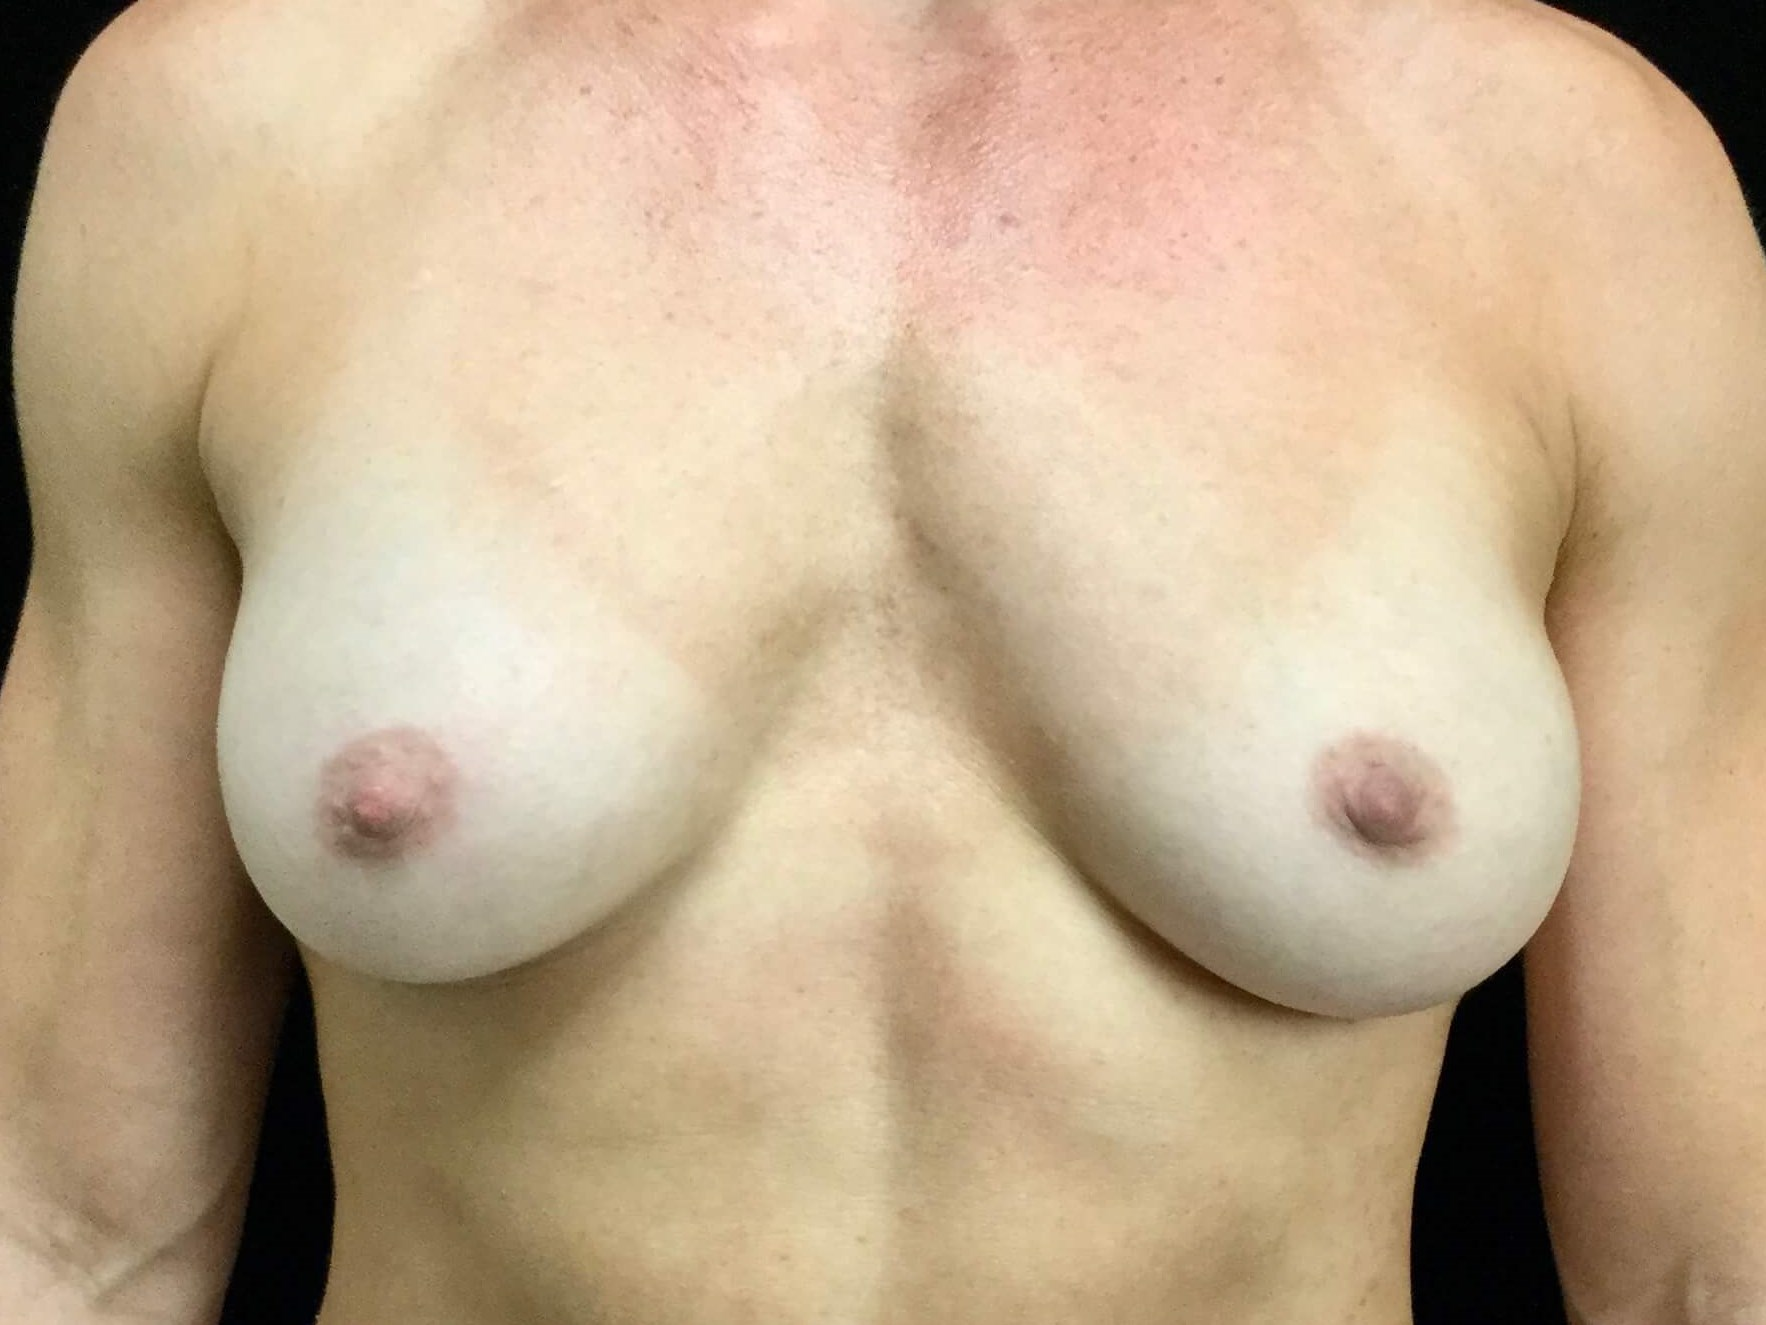 DALLAS, TEXAS WOMAN HAS BREAST IMPLANT REPLACEMENT SURGERY